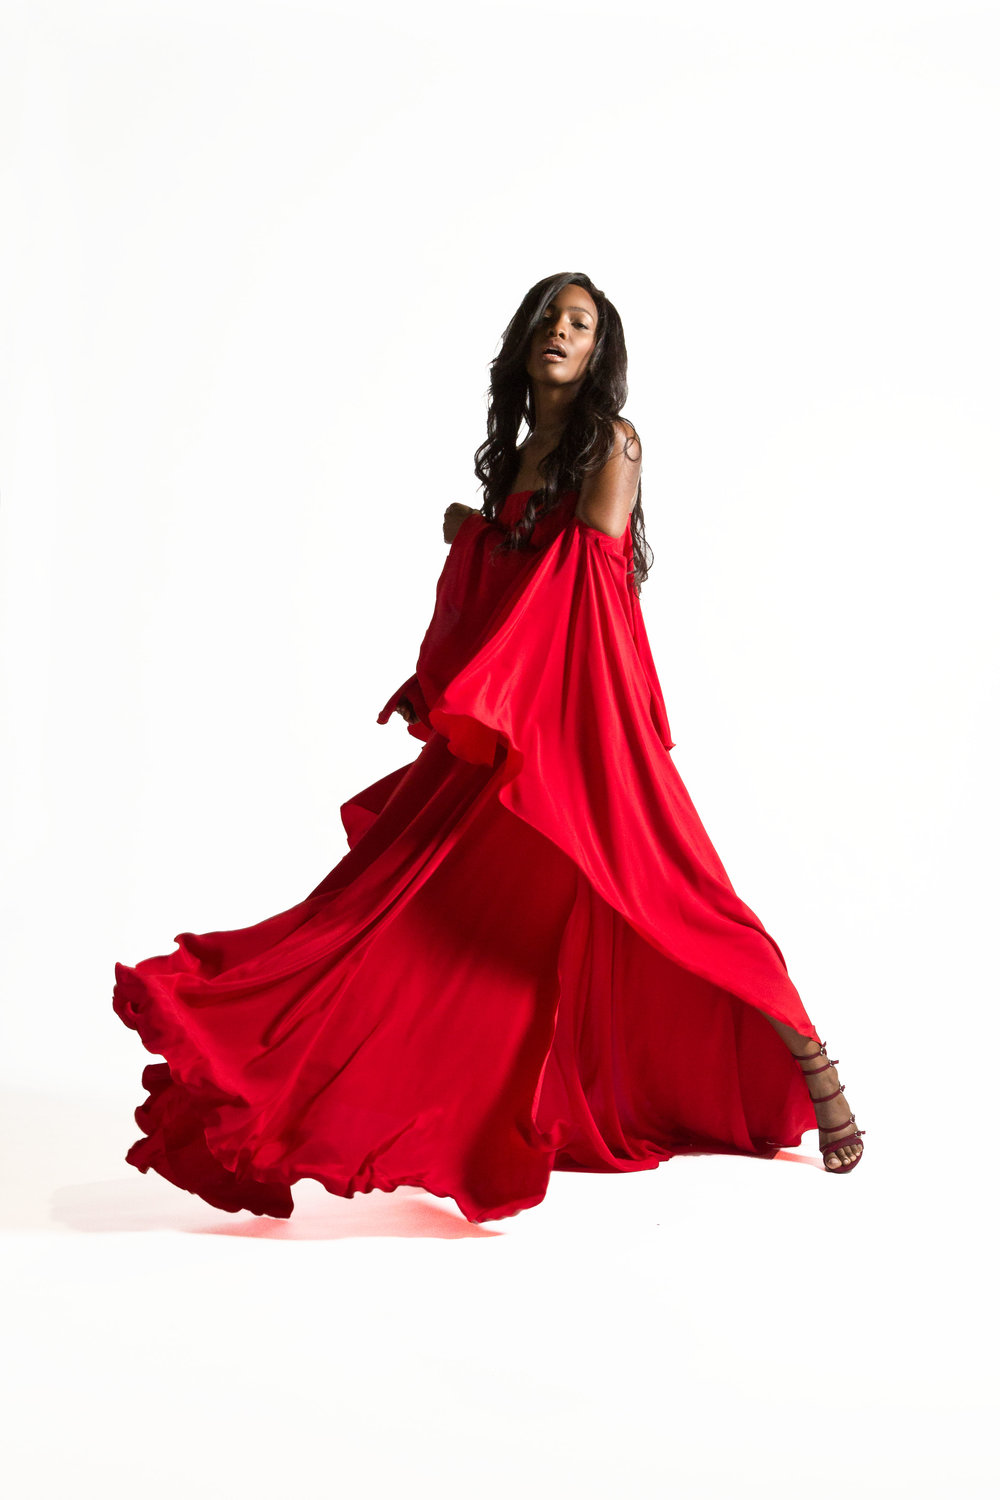 michaelcostello_web_01.jpg